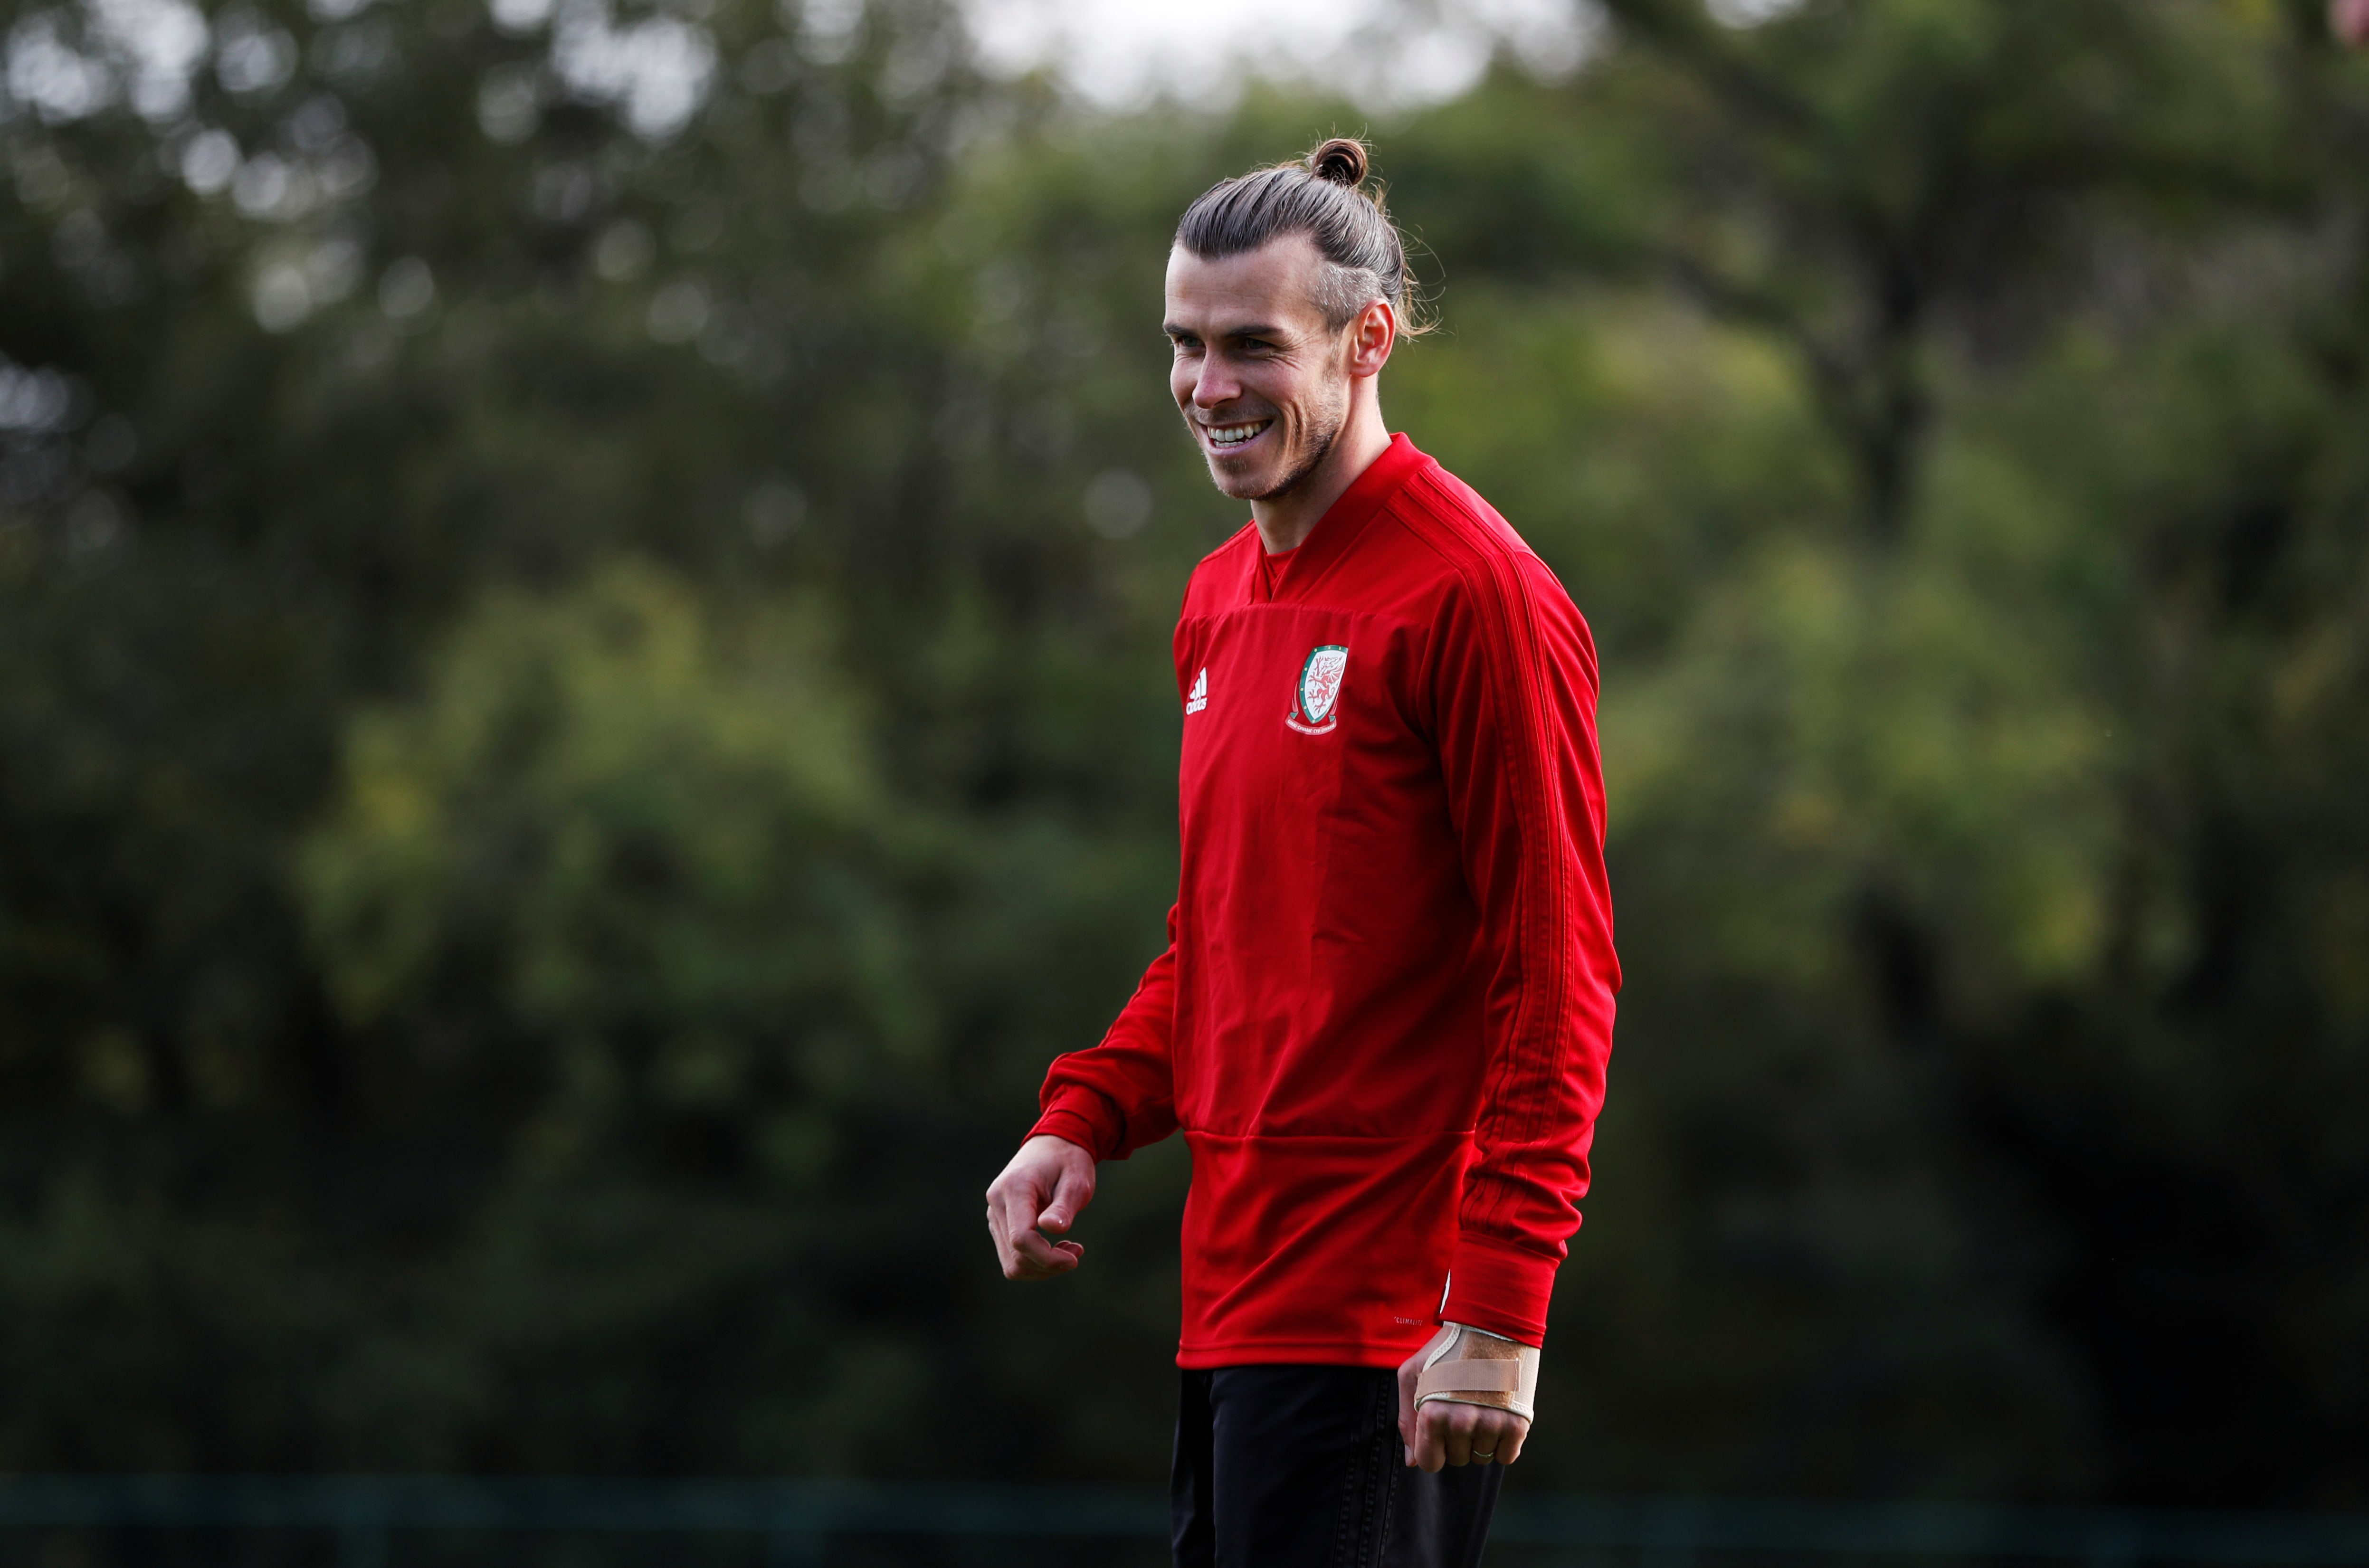 Real Madrid want-away star Gareth Bale desperate to leave club in January